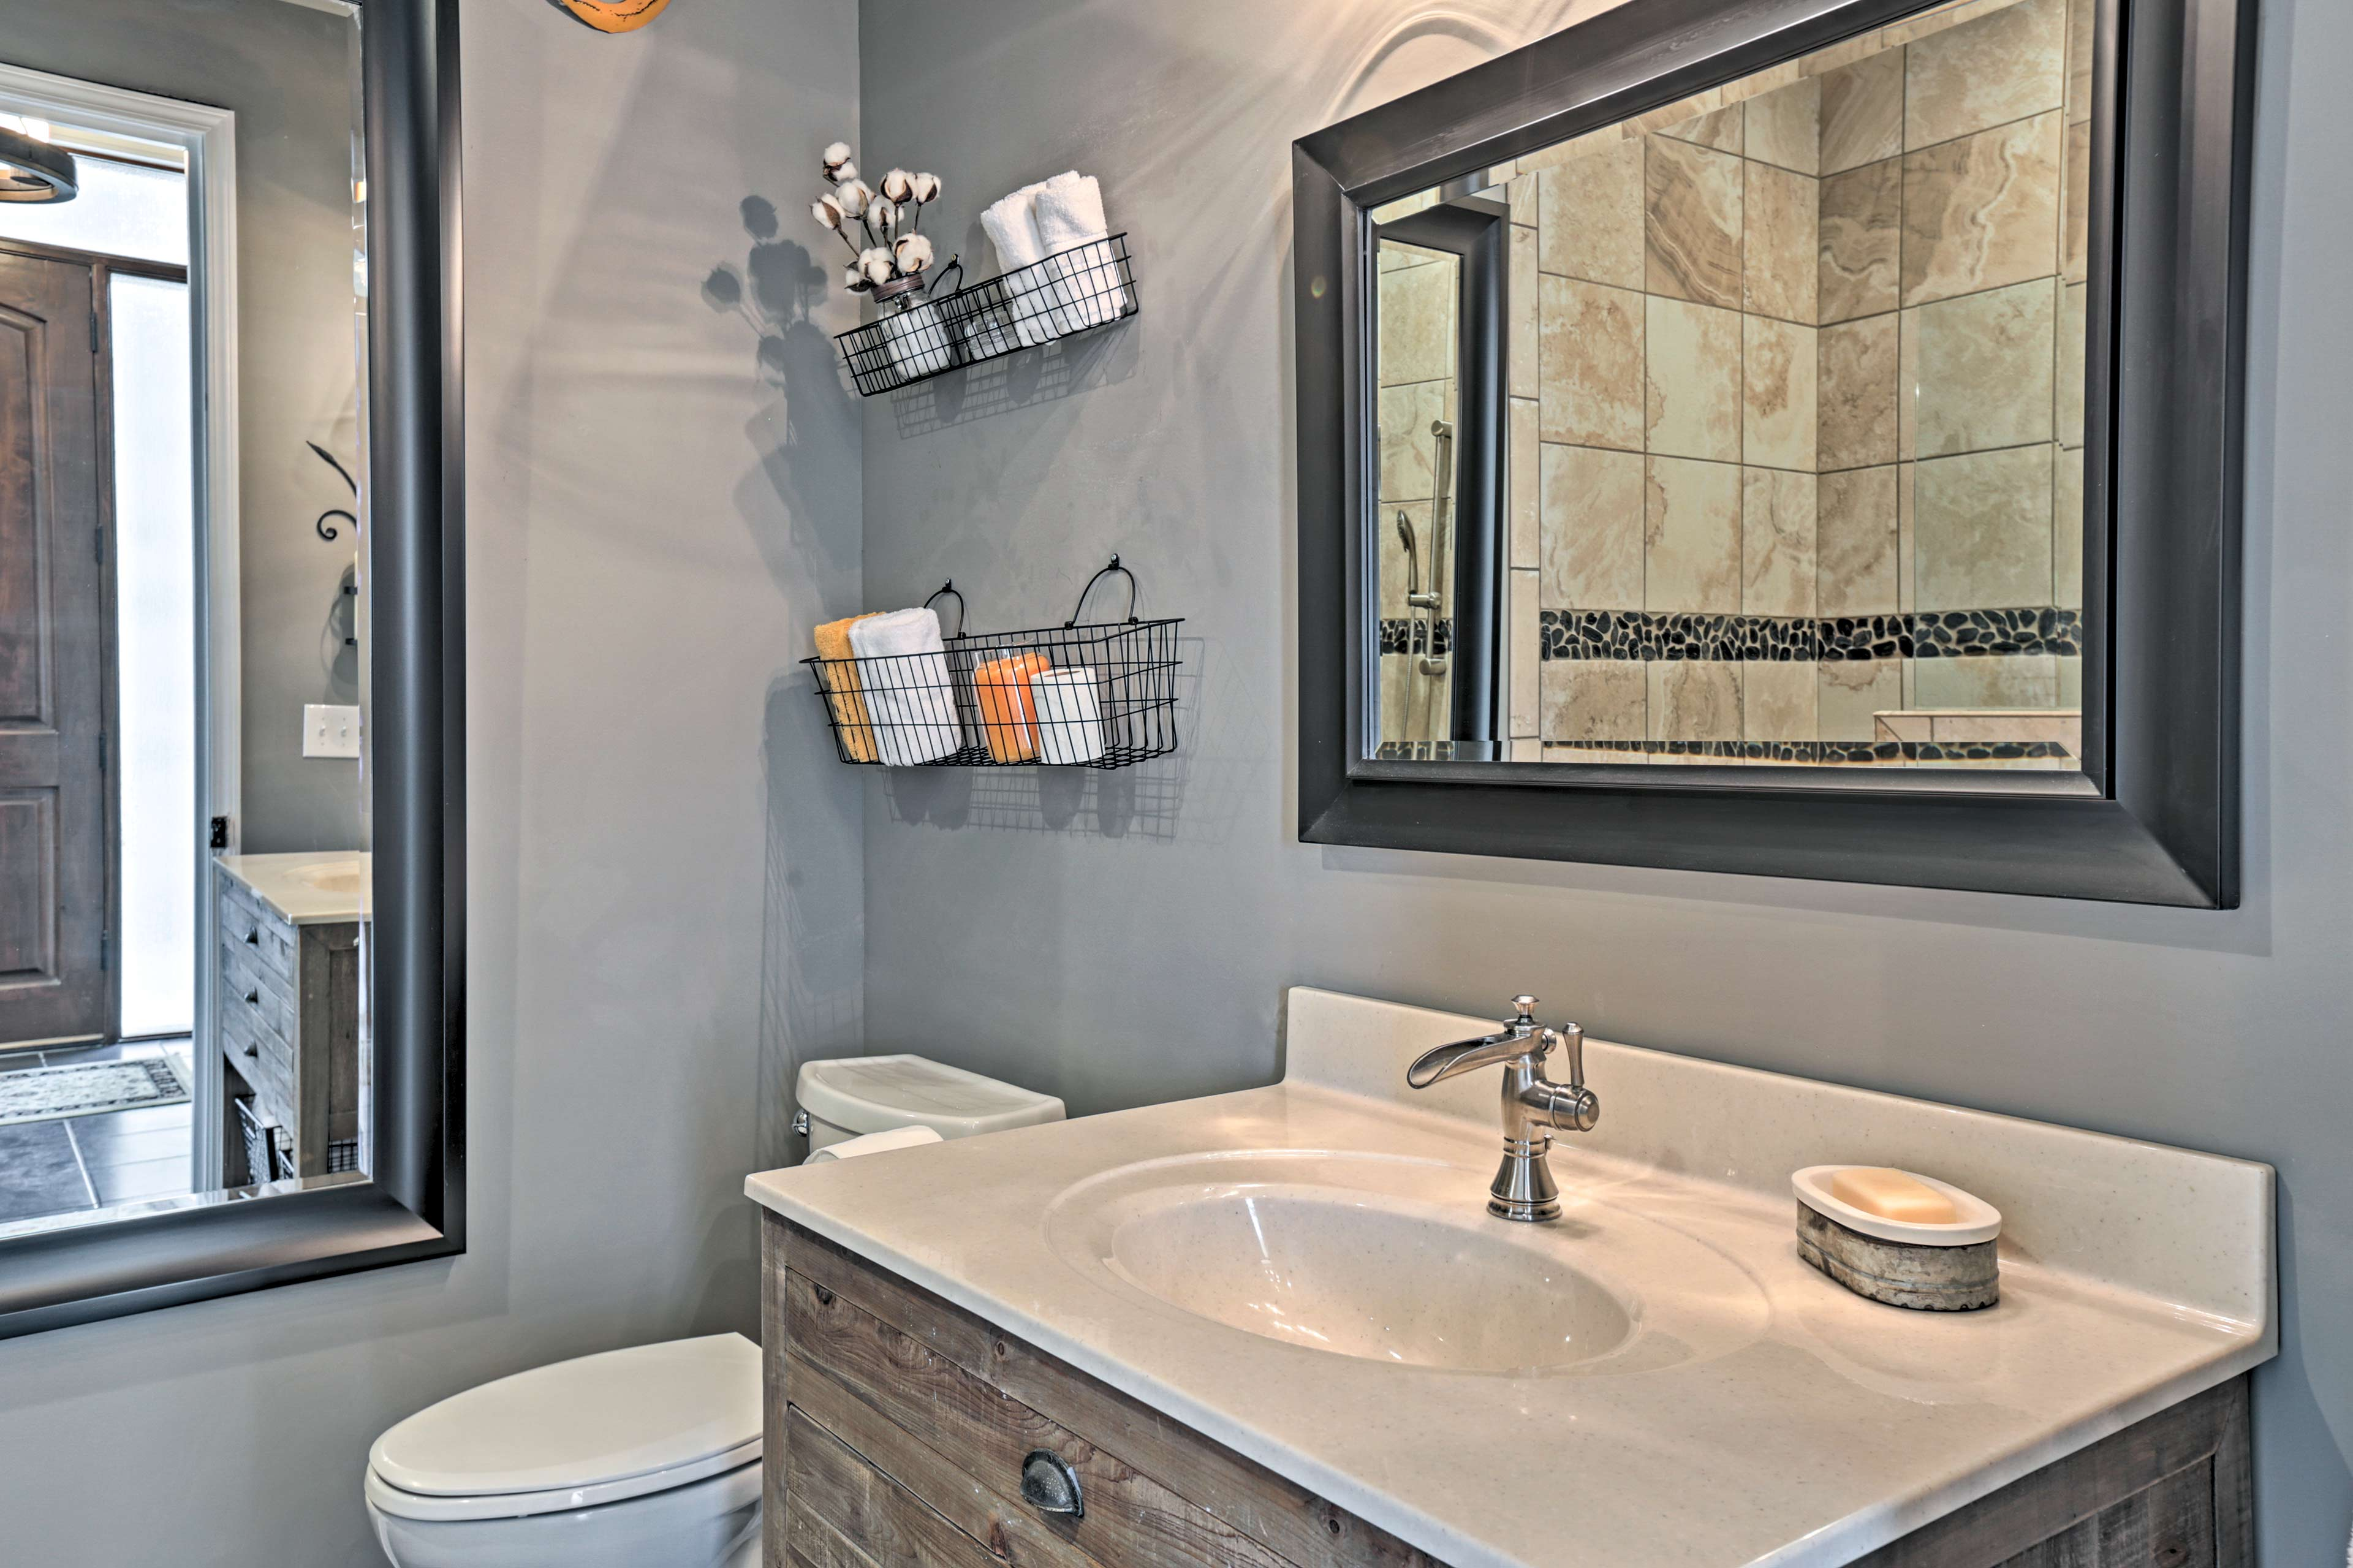 There are 3.5 bathrooms total throughout the property.